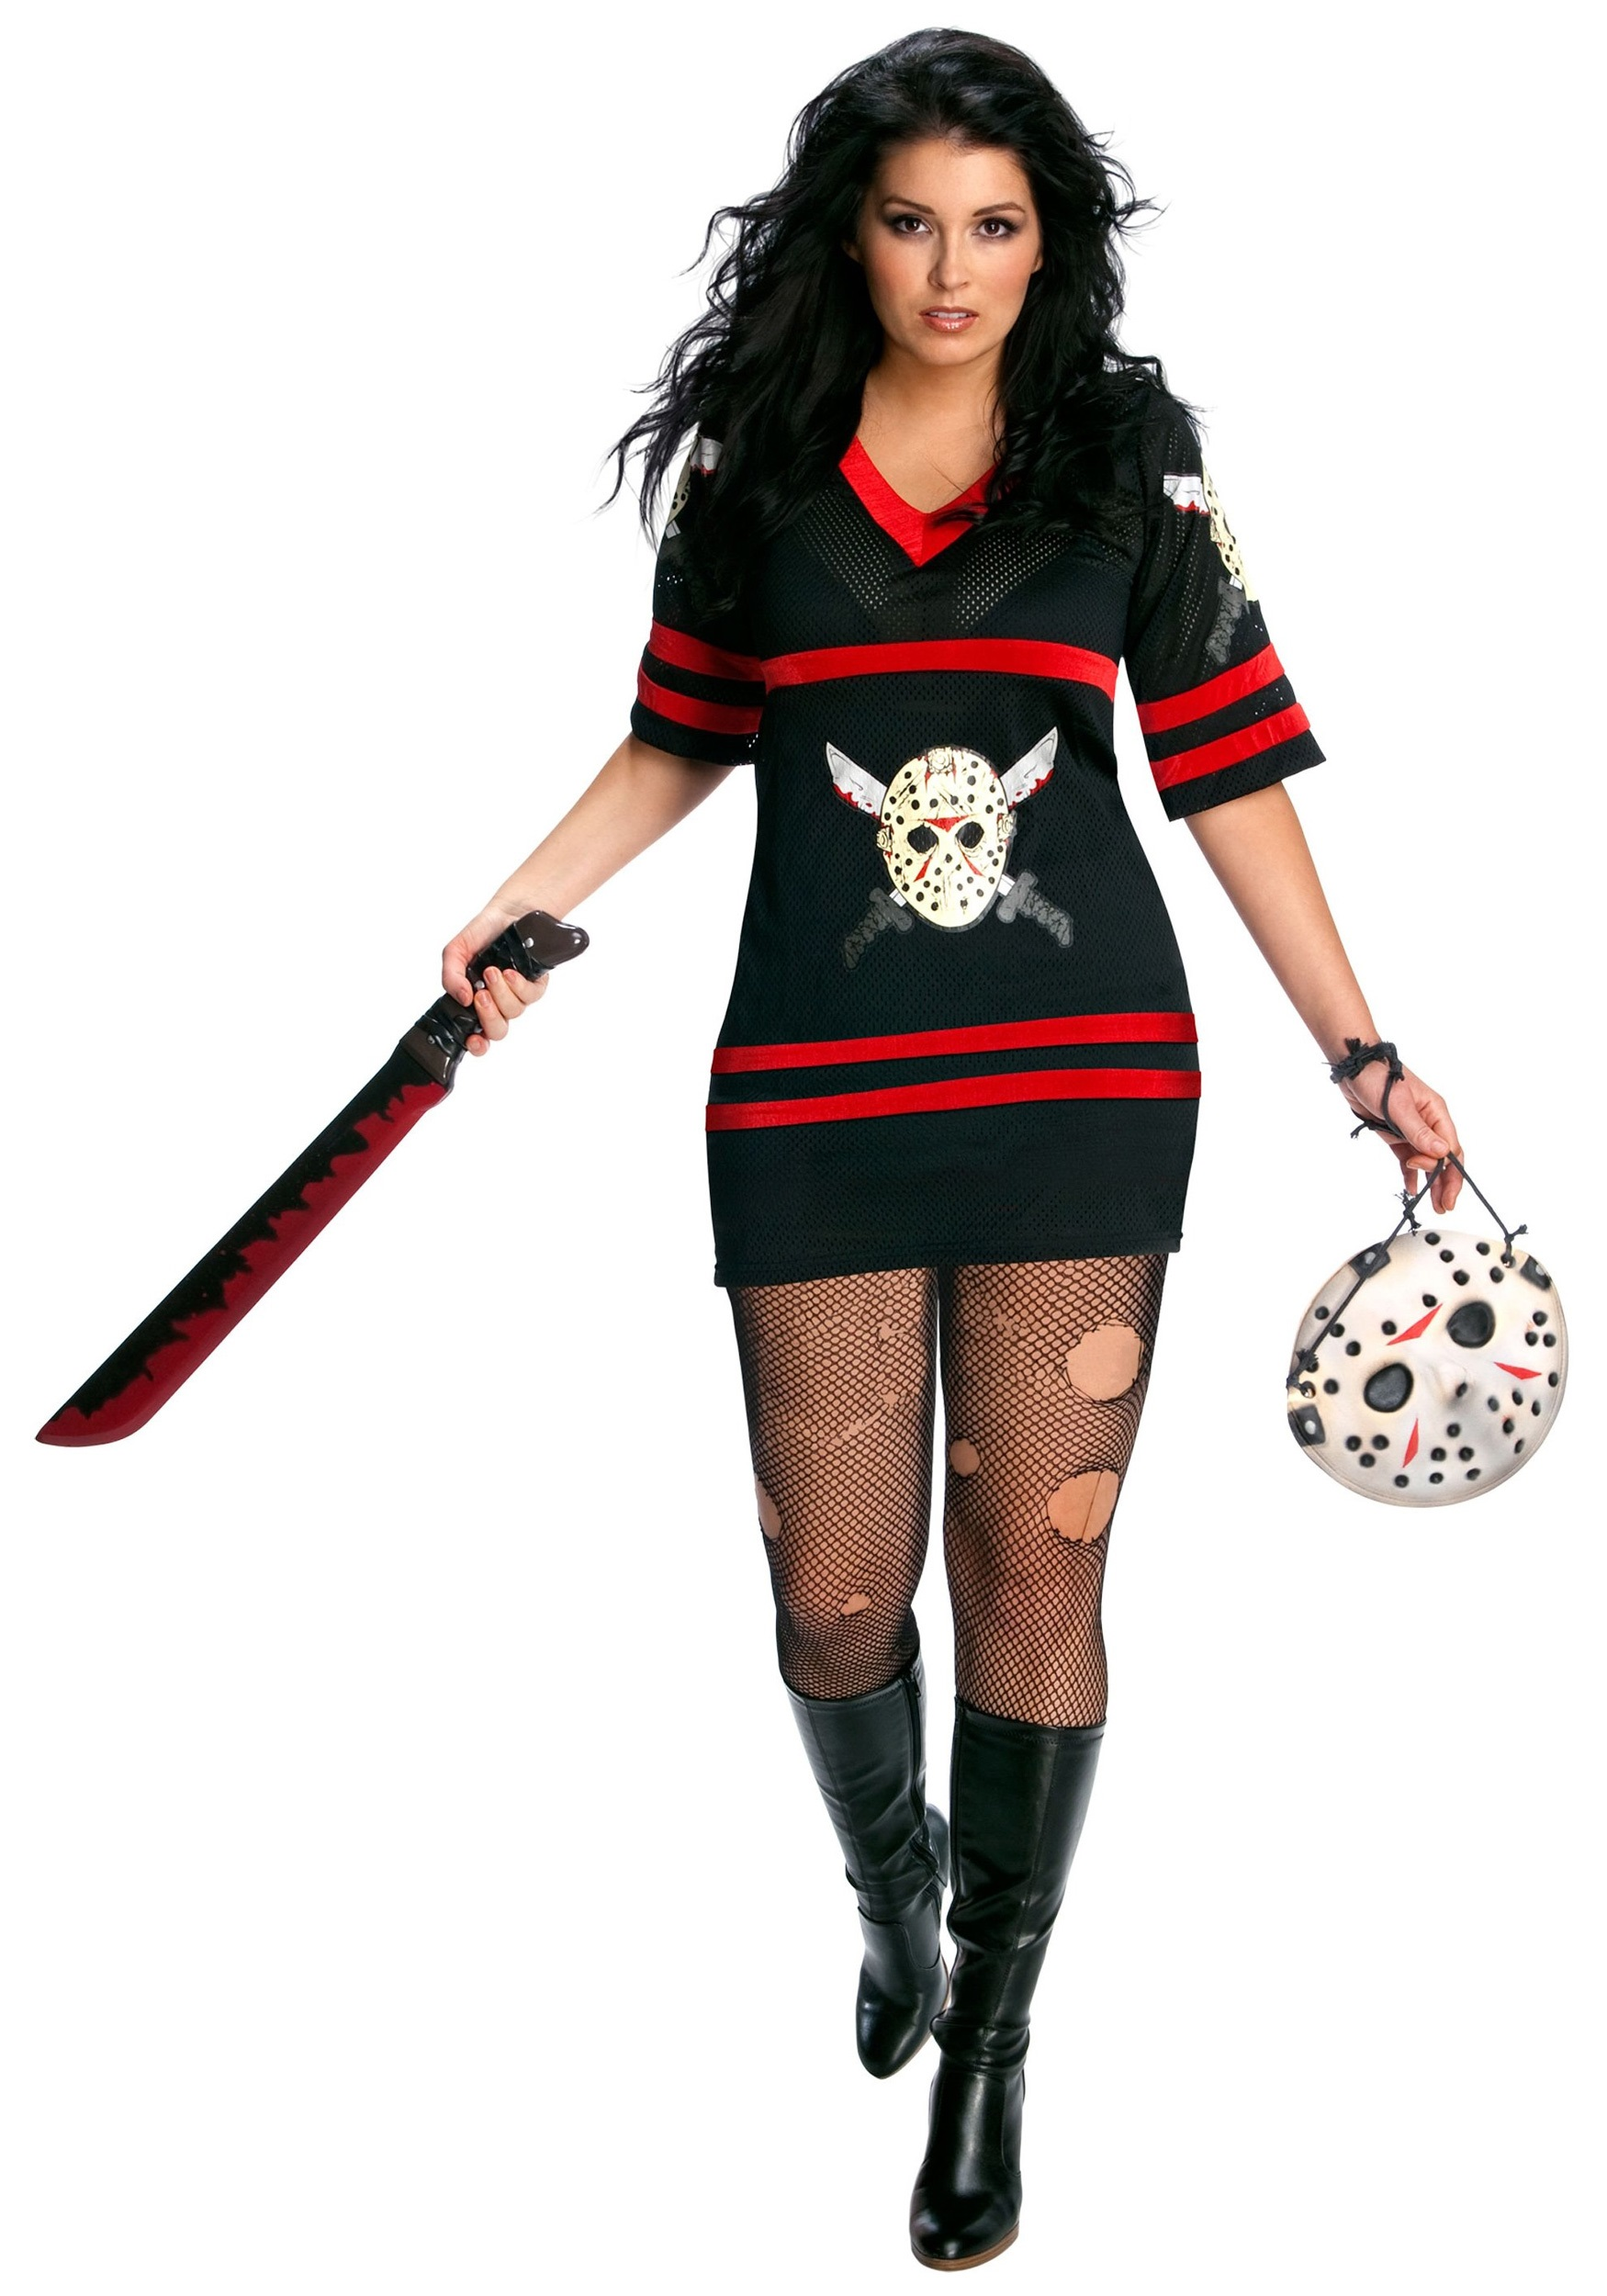 Plus Size Sexy Hacker Jason Costume  sc 1 st  Halloween Costume & Plus Size Sexy Hacker Jason Costume - Womenu0027s Friday the 13th Costumes